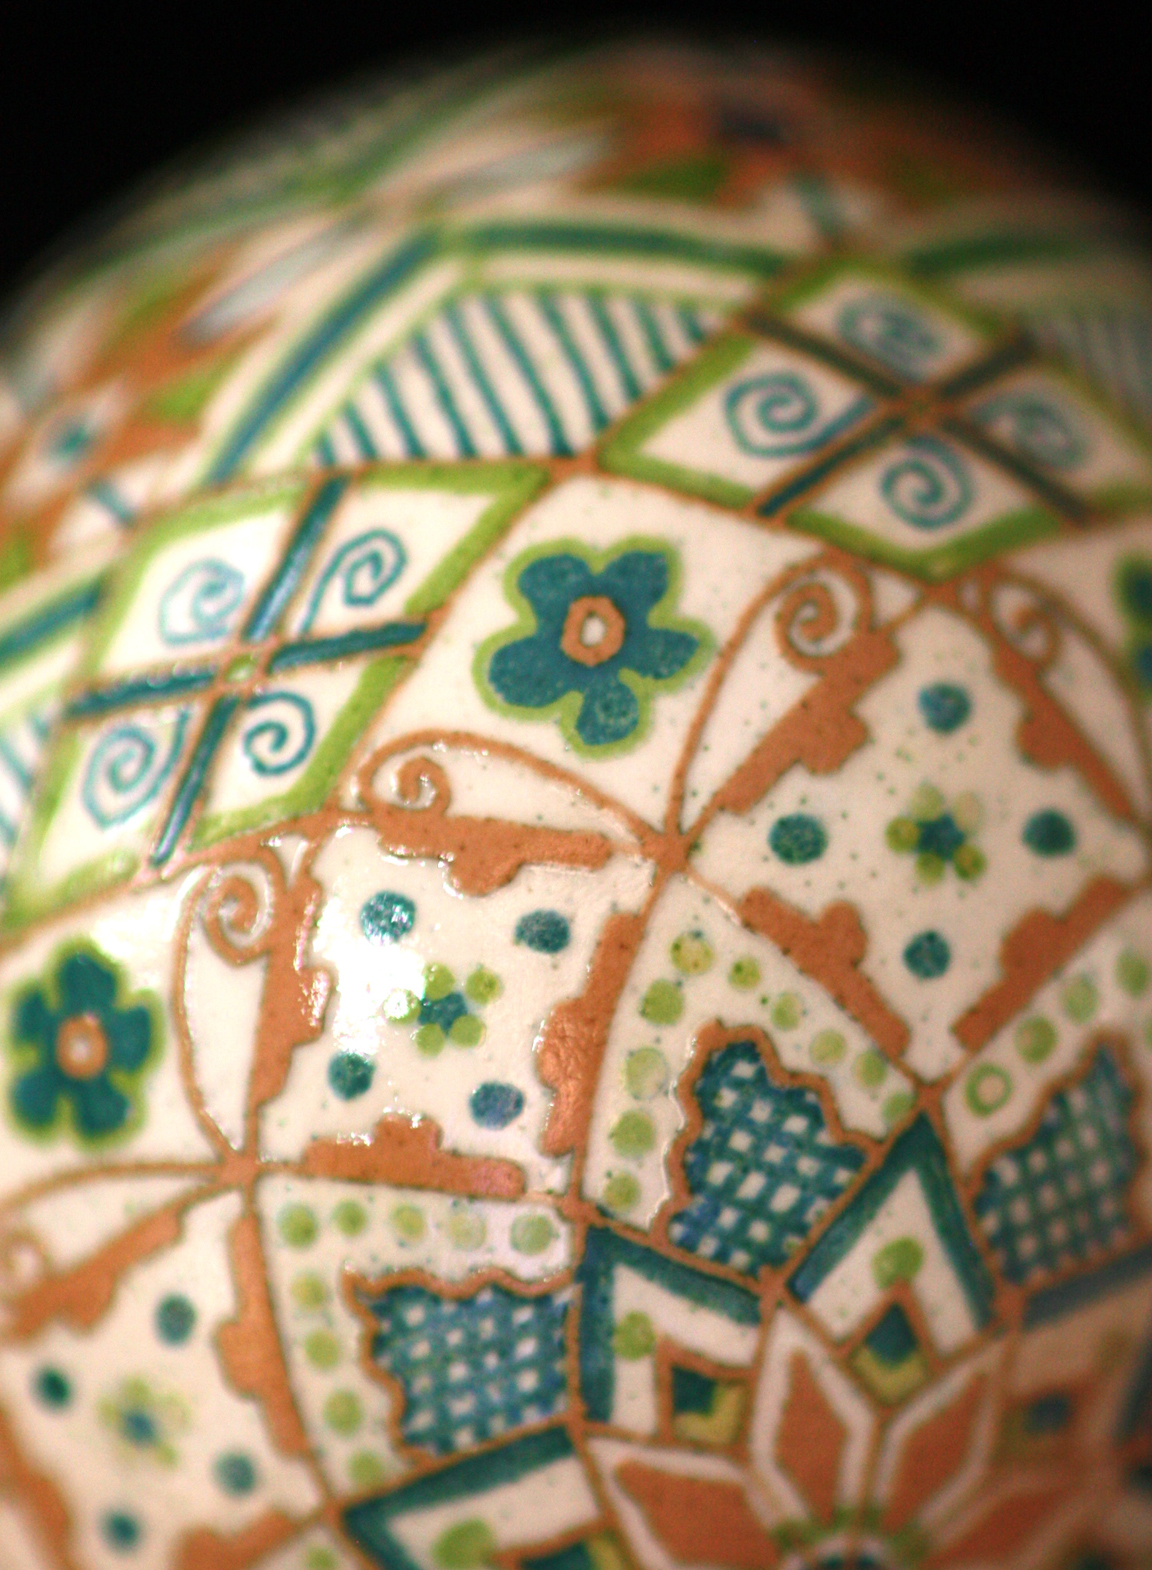 Etched Brown Chicken Egg Rose Design in Blue and Green